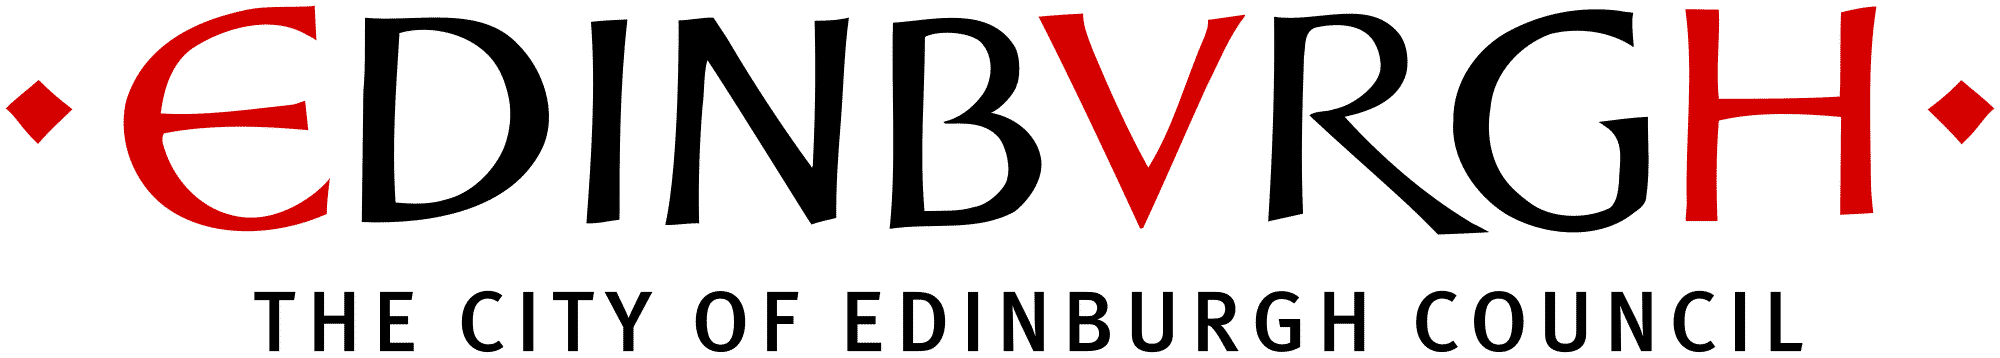 Edinburgh-City-Council-Logo